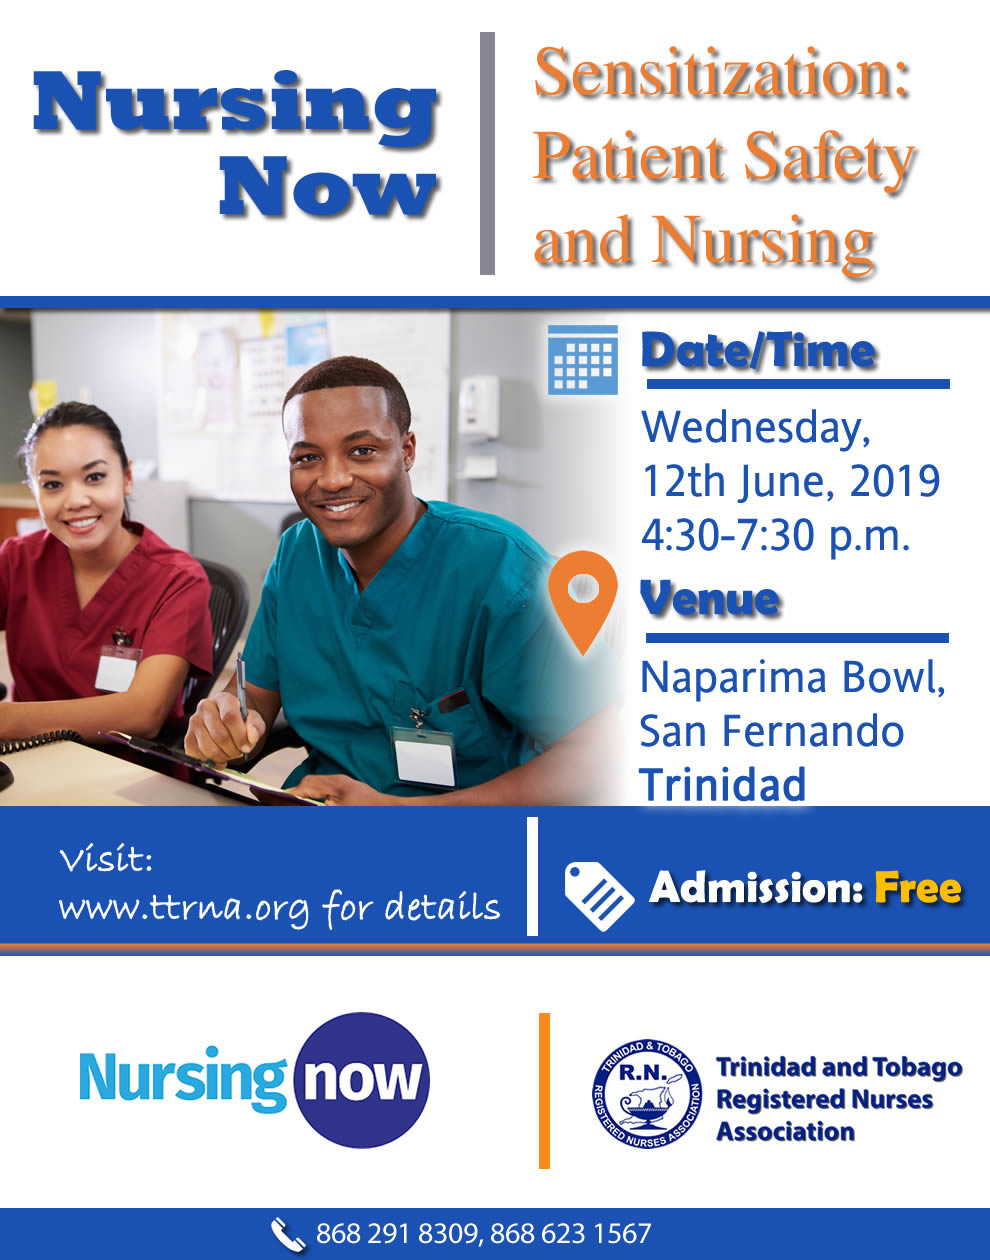 Nursing Now South2 web